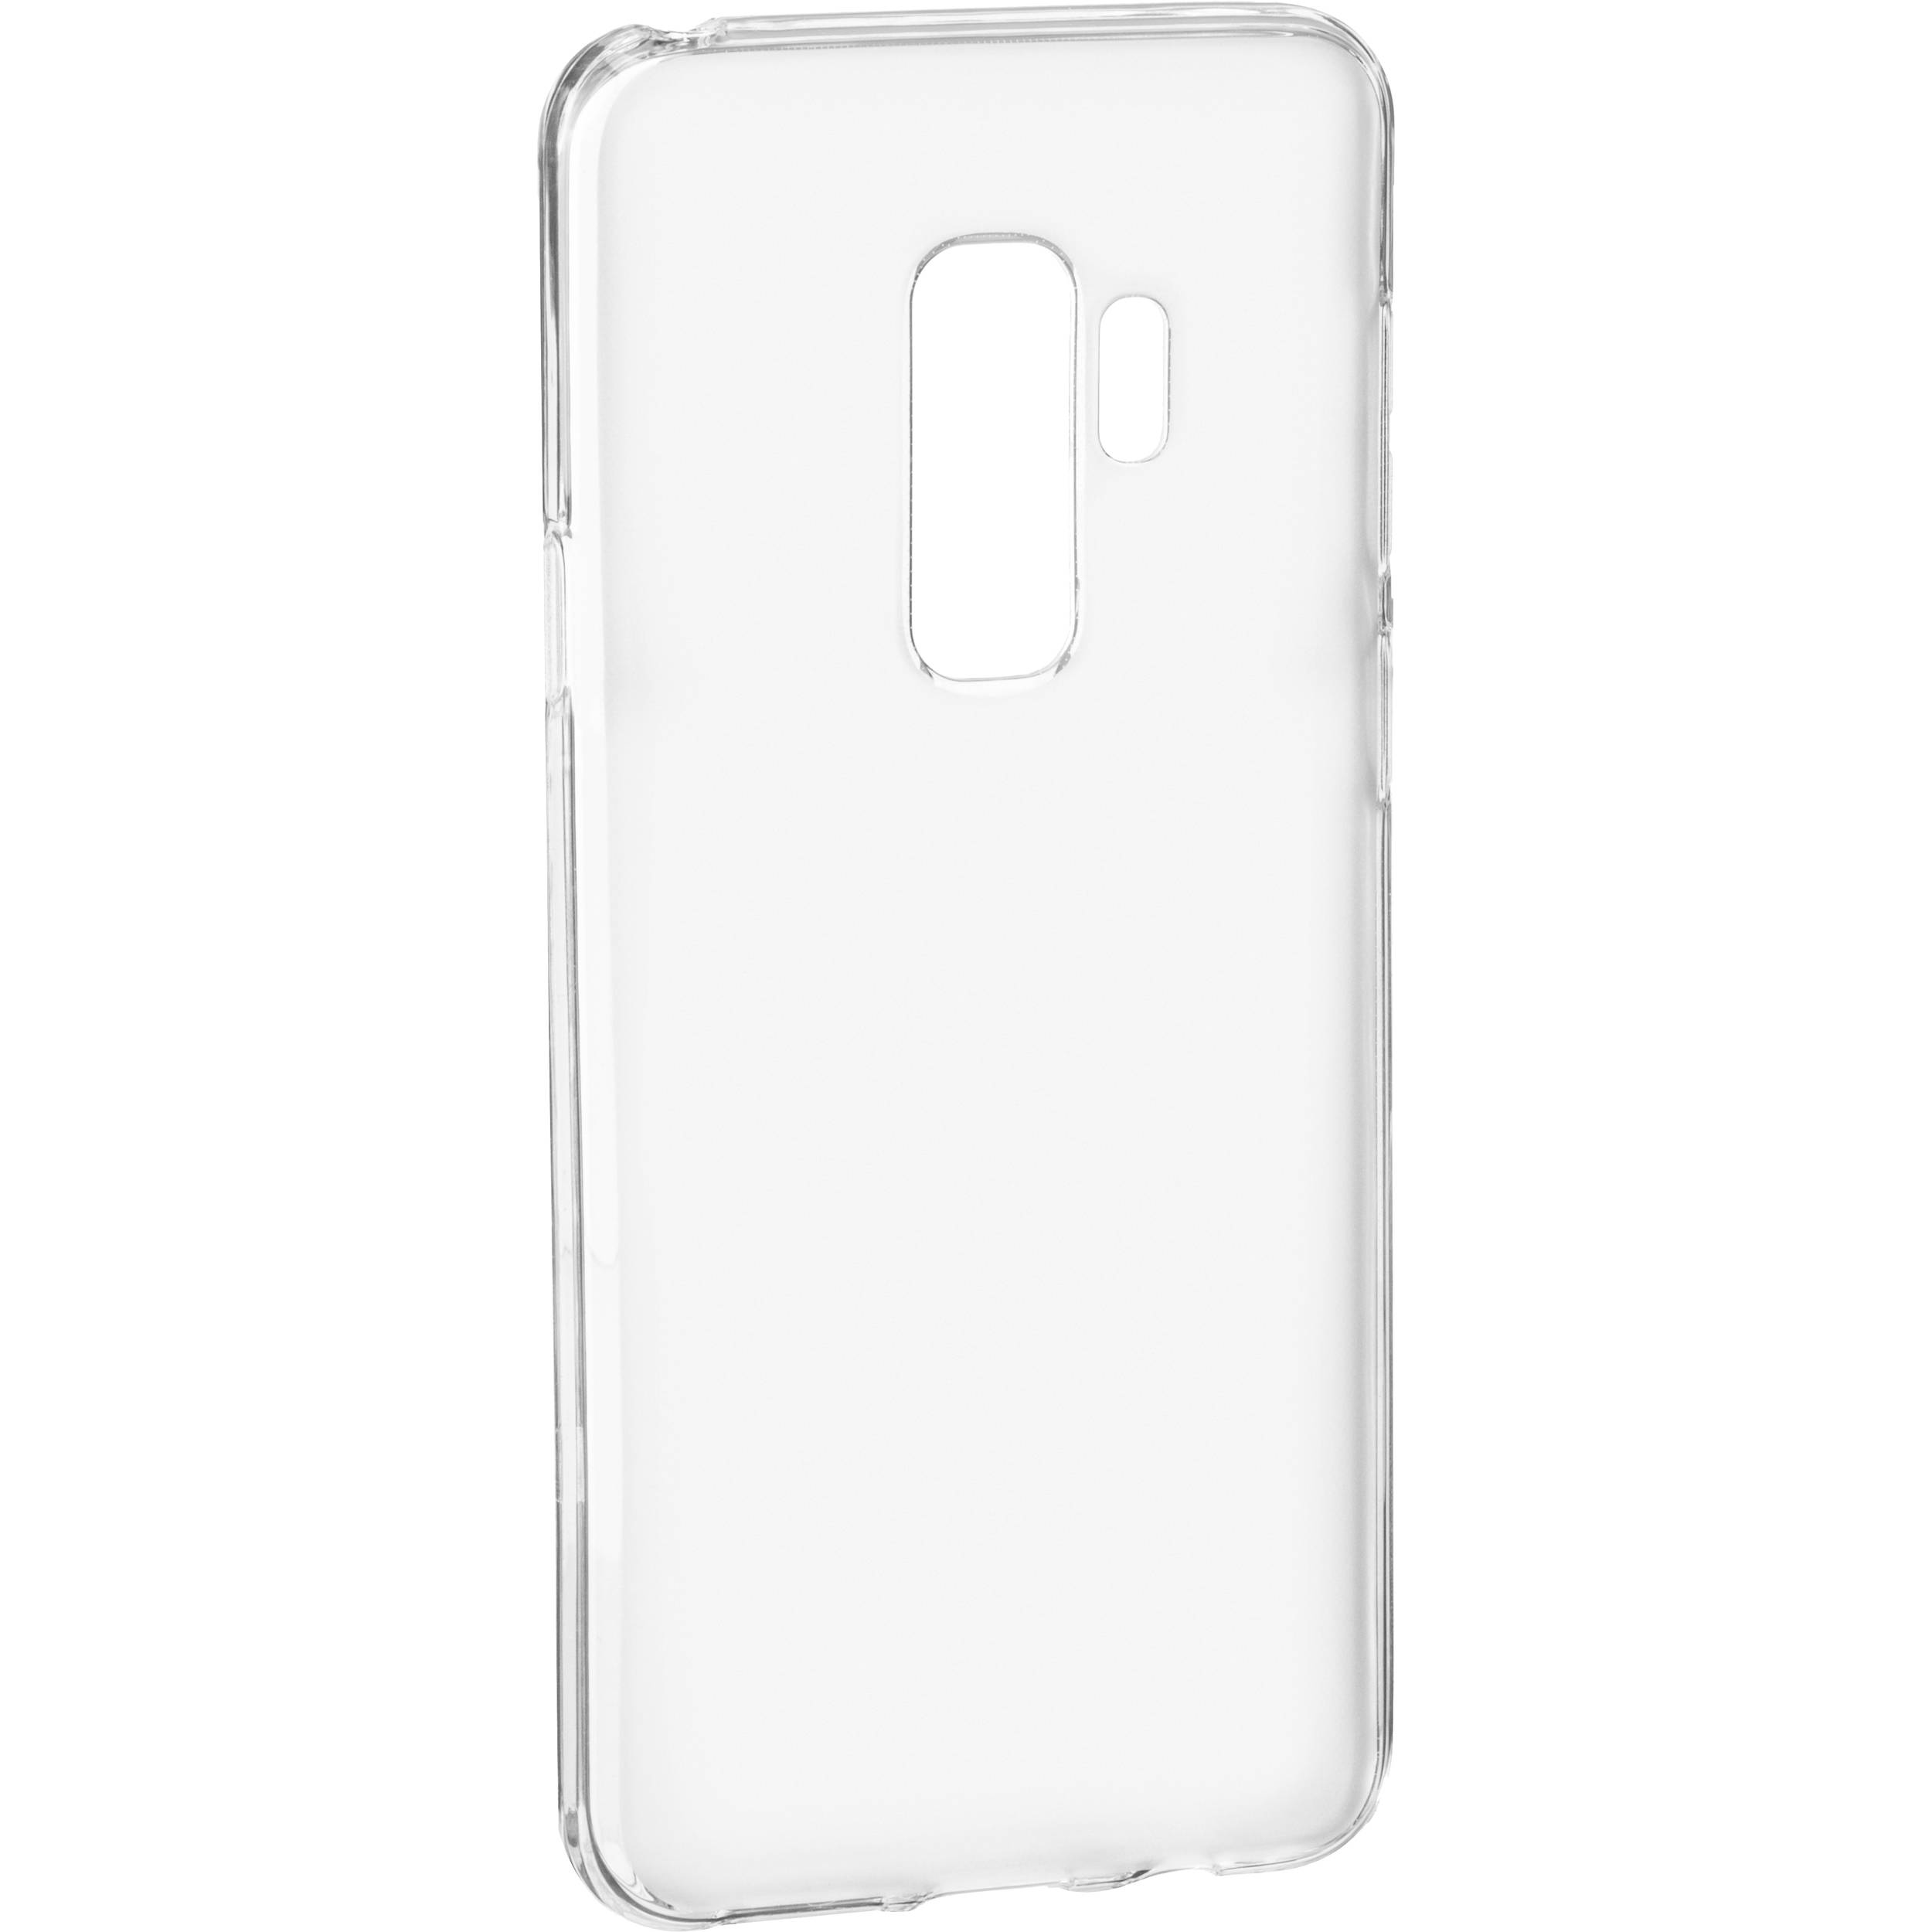 separation shoes ac05c 89c93 AVODA TPU Case for Samsung Galaxy S9+ (Frosted)